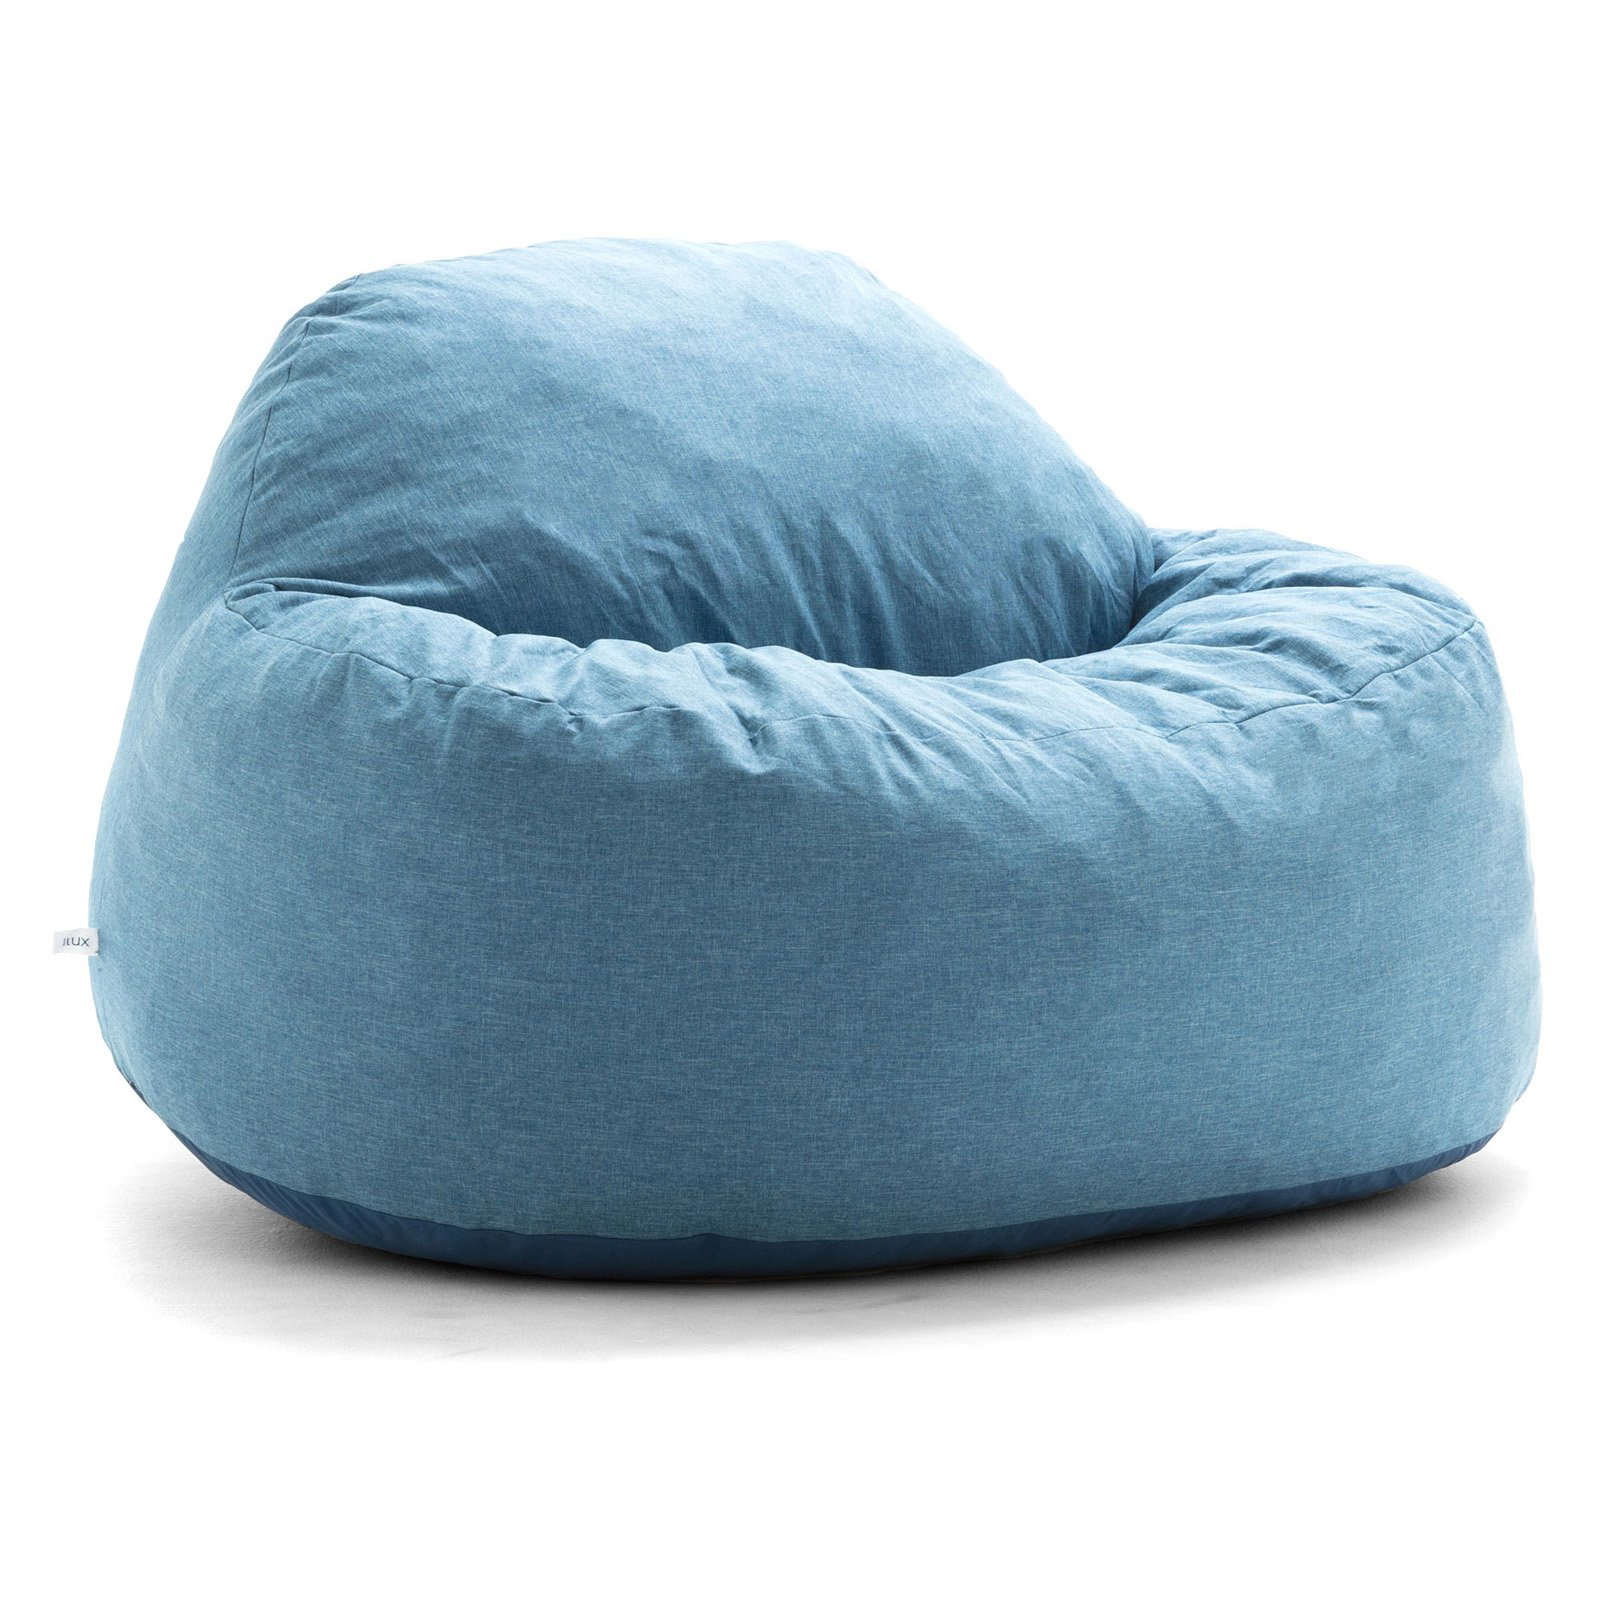 Lux by Big Joe Chillum Loveseat Union Bean Bag